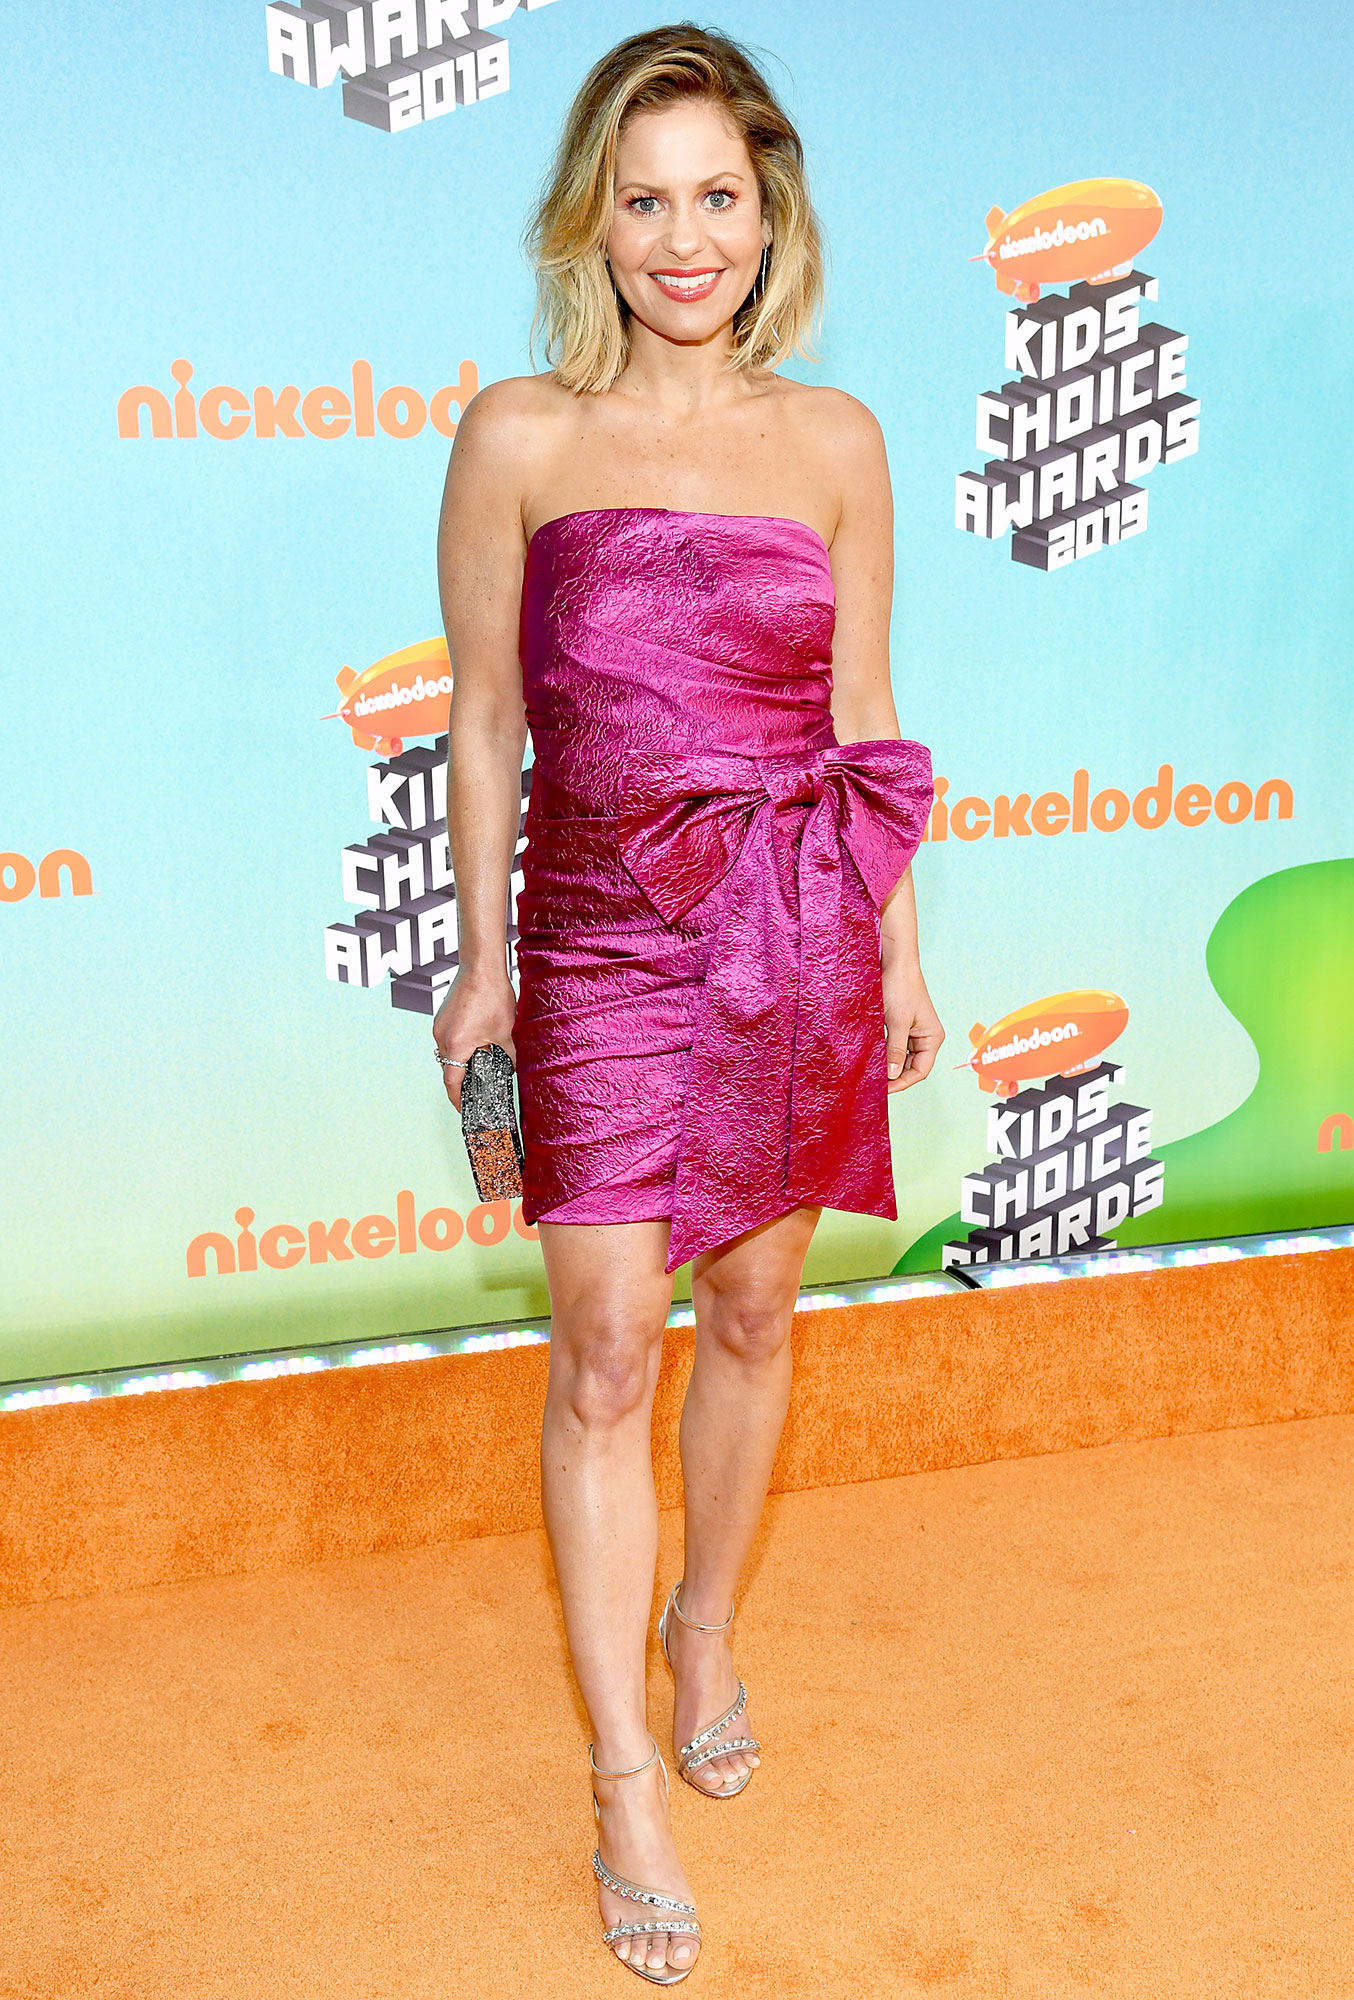 Nickelodeon Kids Choice Awards 2019 Candace Cameron Bure - The Full House actress dazzled in a hot pink cocktail dress with an oversized bow at the waist and strappy silver stilettos.